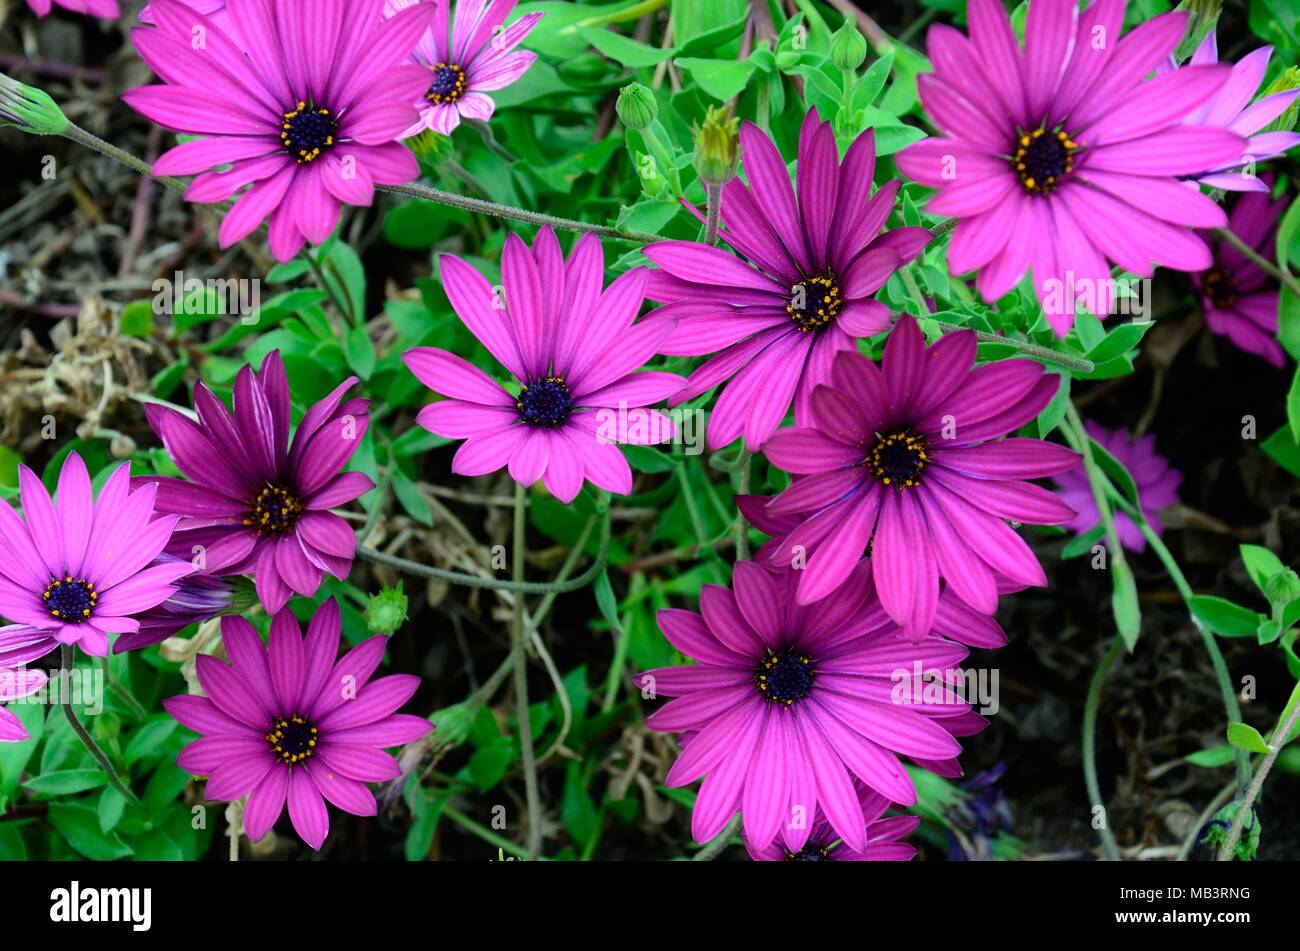 Purple daisy like flowers stock photos purple daisy like flowers osteospermum ecklonis african daisy cape marigold purple flowers stock image izmirmasajfo